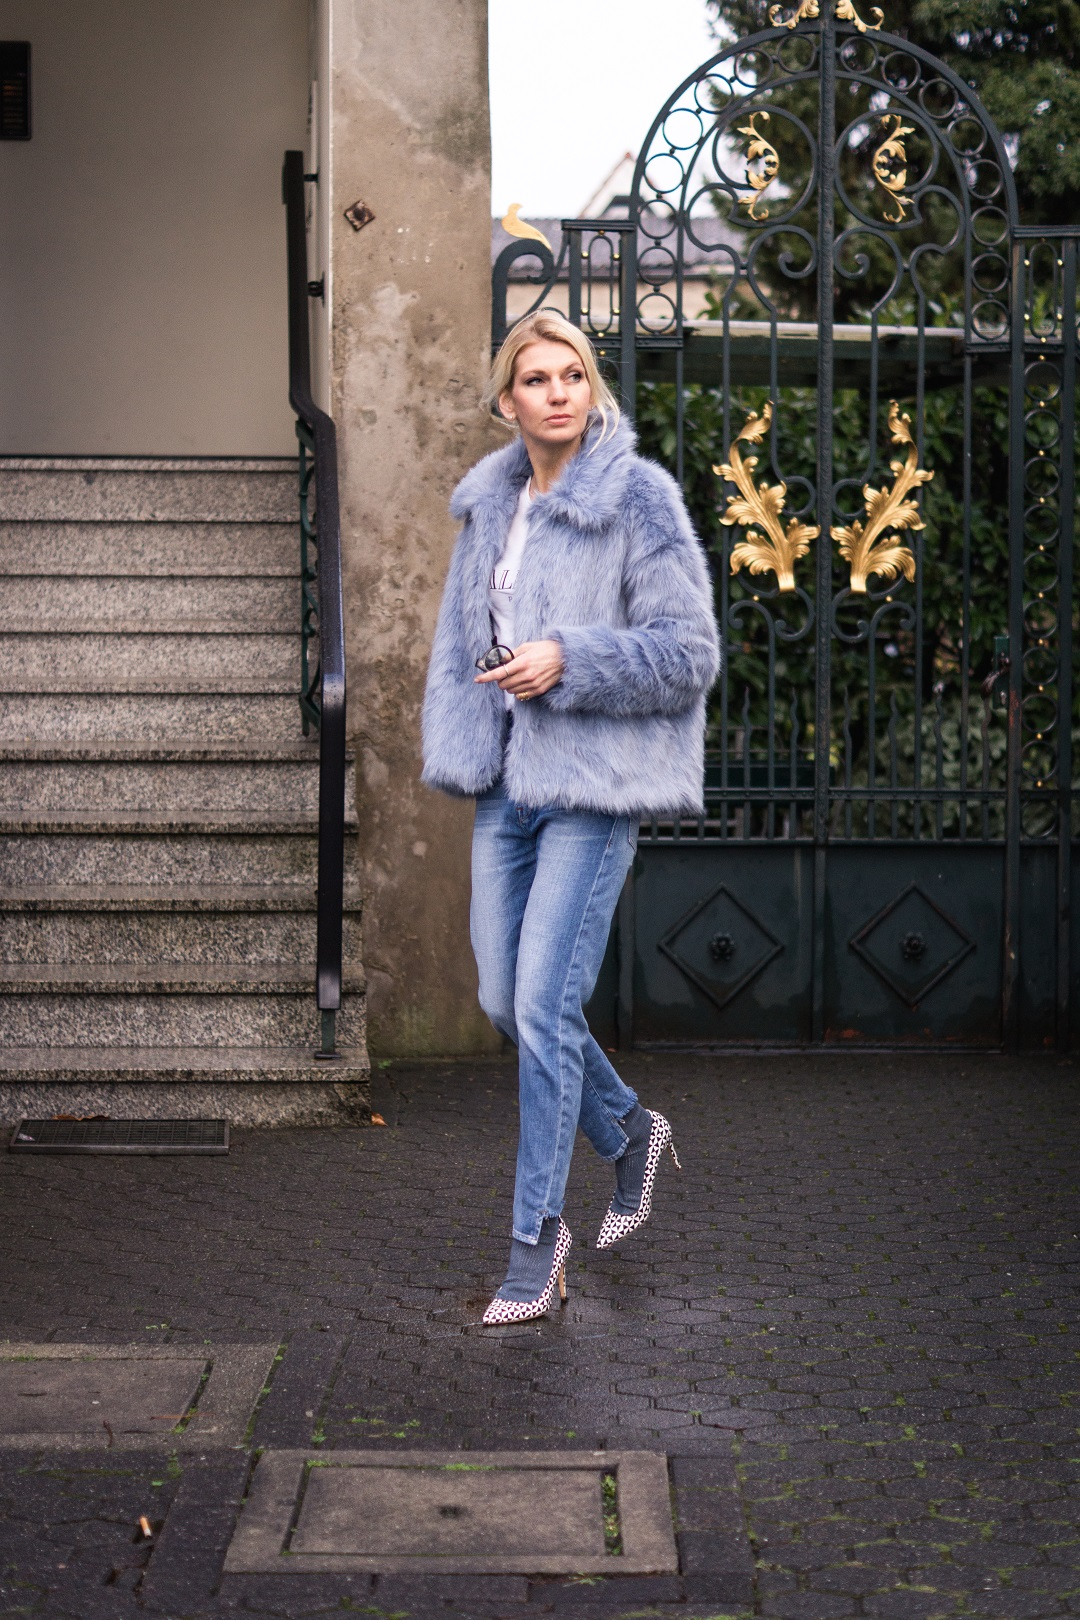 warm and cozy until christmas with a faux-fur jacket